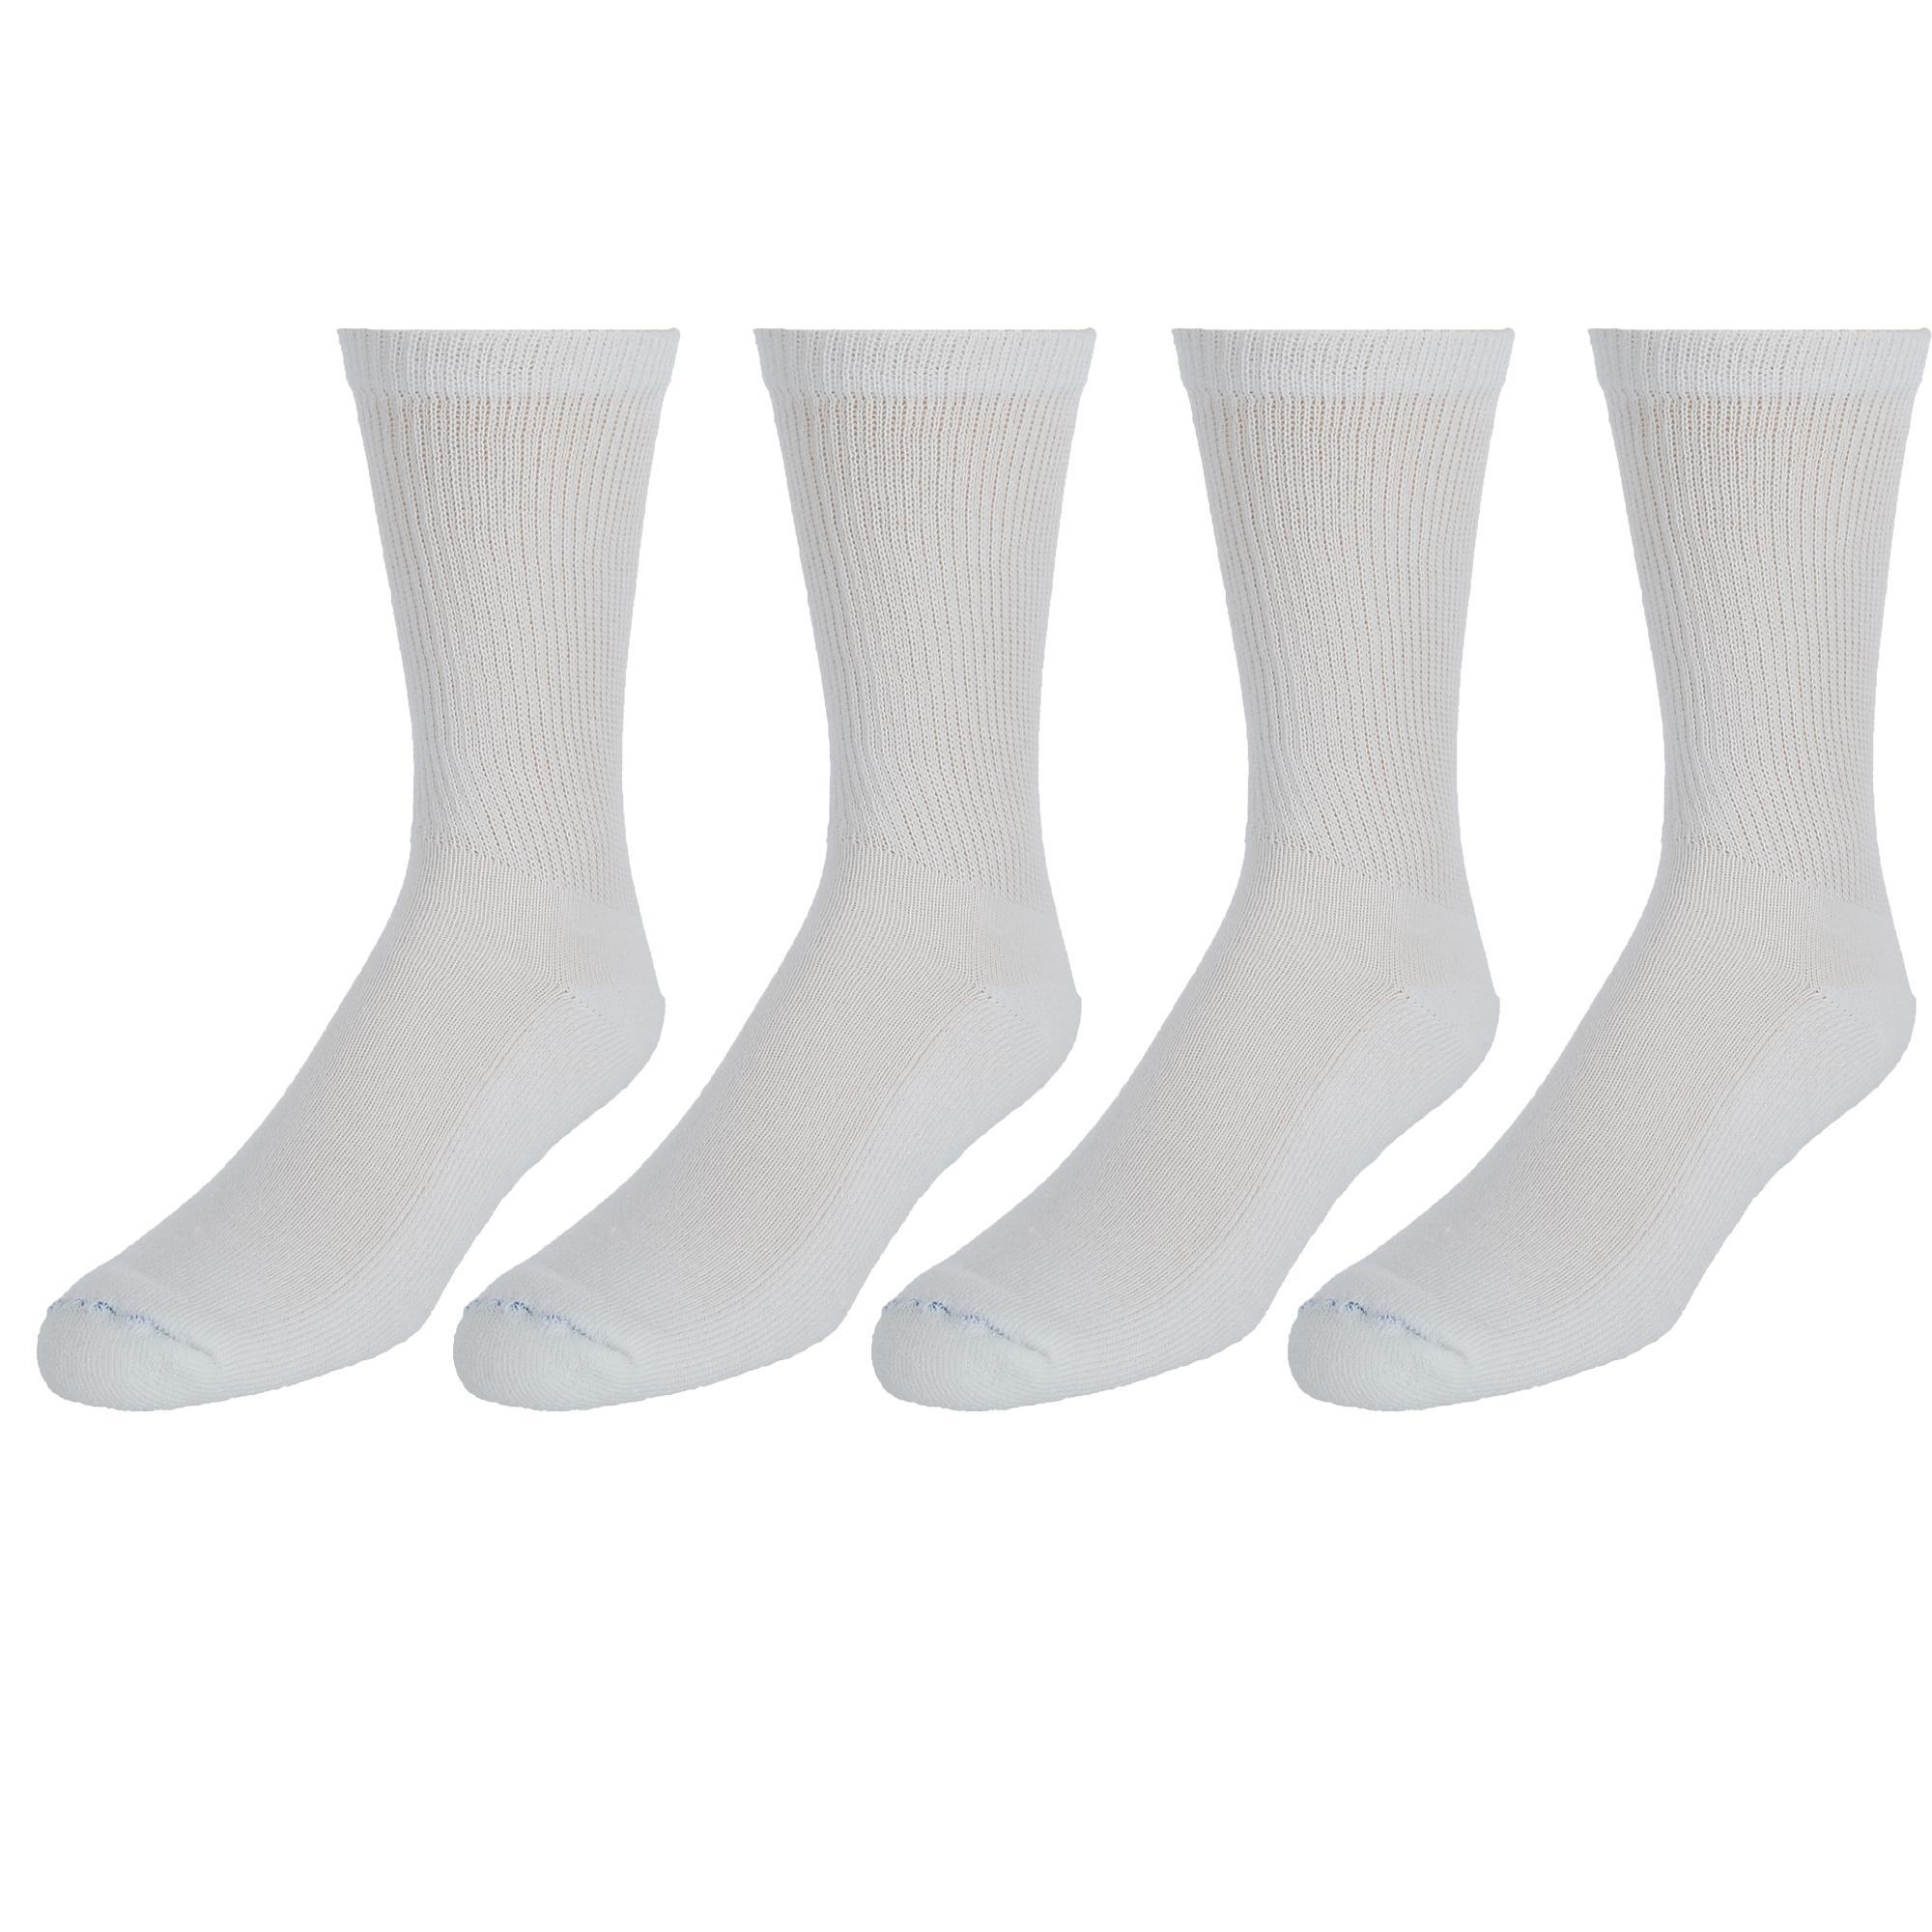 New-Dr-Scholls-Men-039-s-Diabetic-Circulatory-Crew-Socks-4-Pair-Pack miniature 5